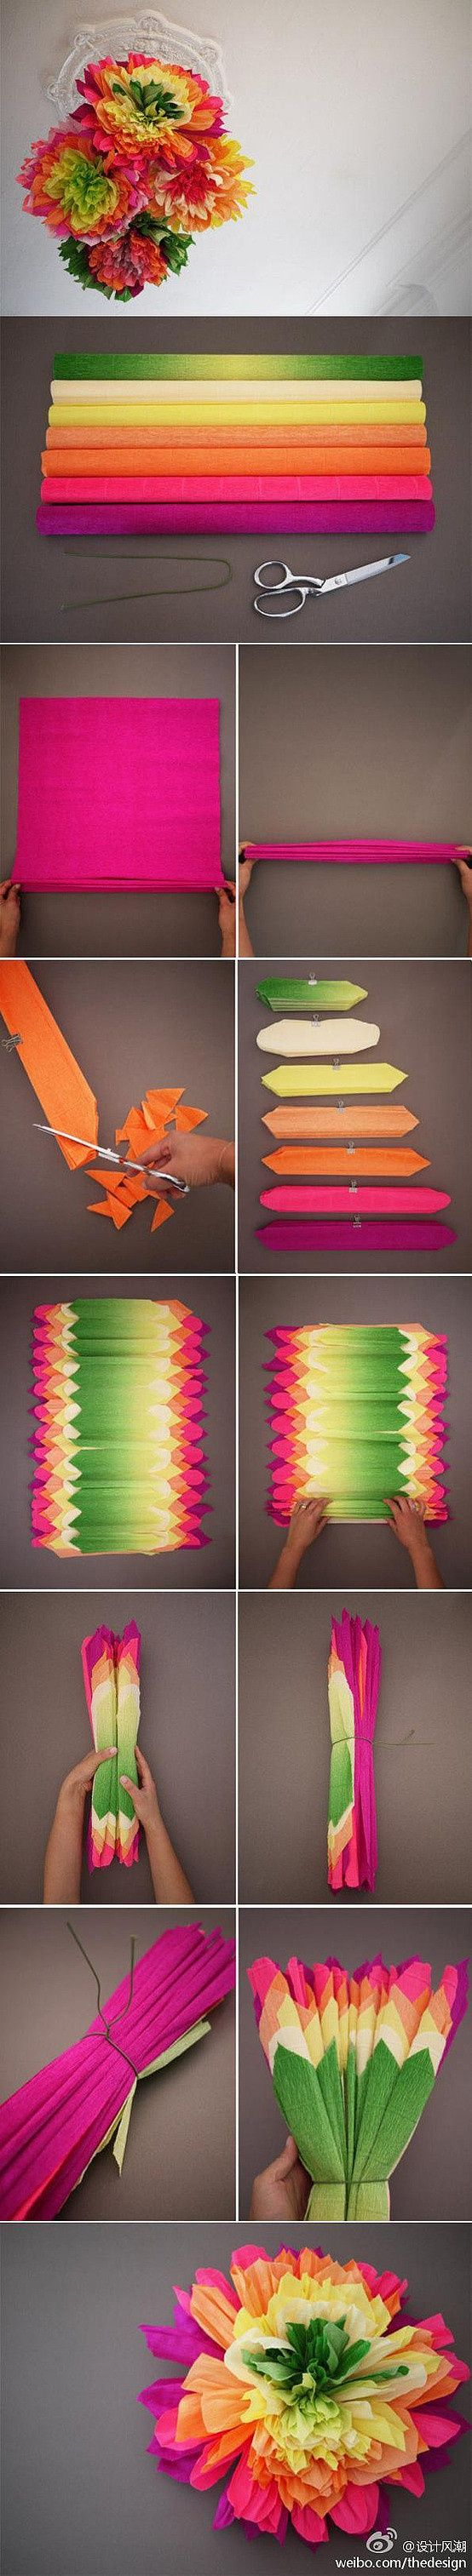 Origami Flowers using crepe paper.  Love the way they incorporated the different colors.